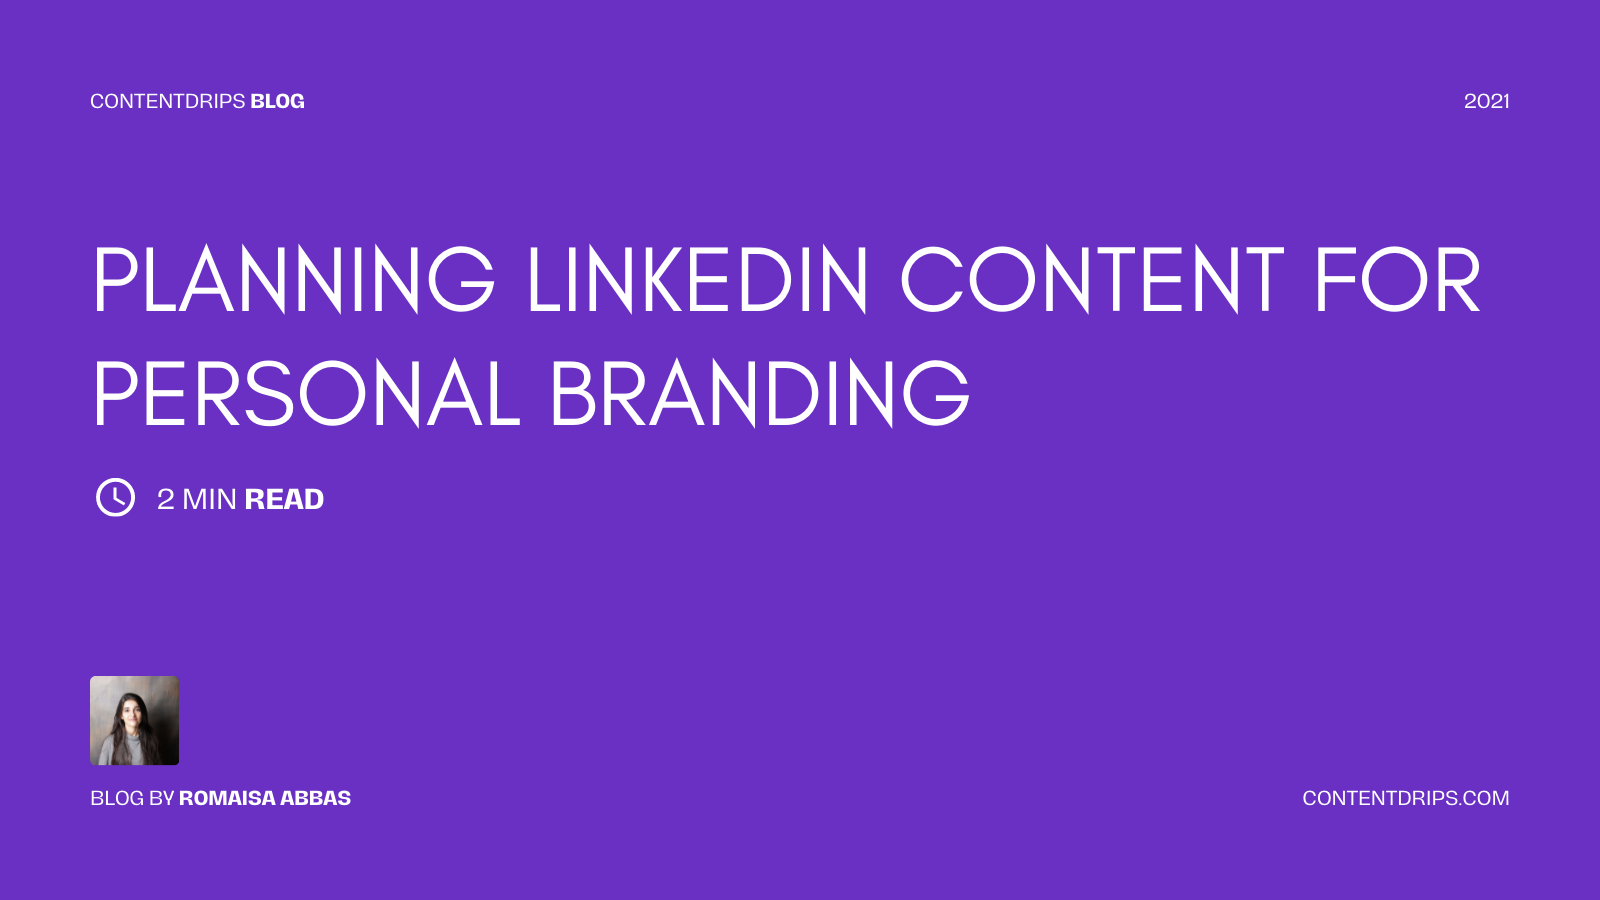 Linkedin Content for Personal Branding